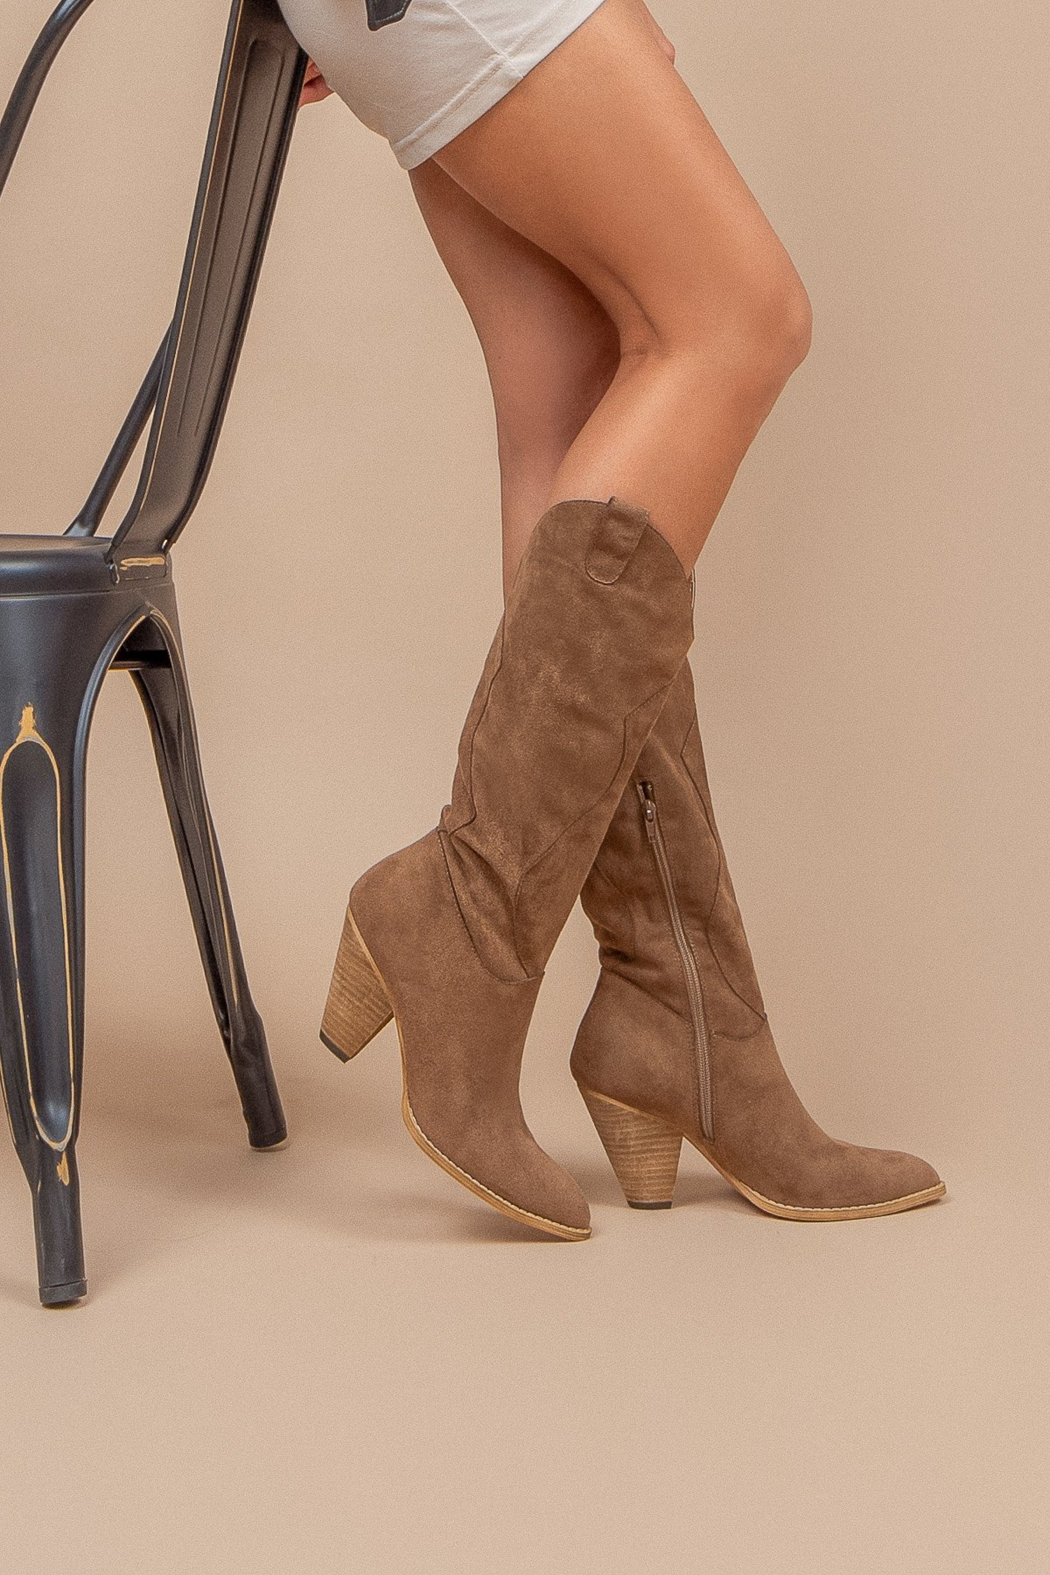 miracle miles  Bohemian/Western Knee-High Boot - Front Full Image